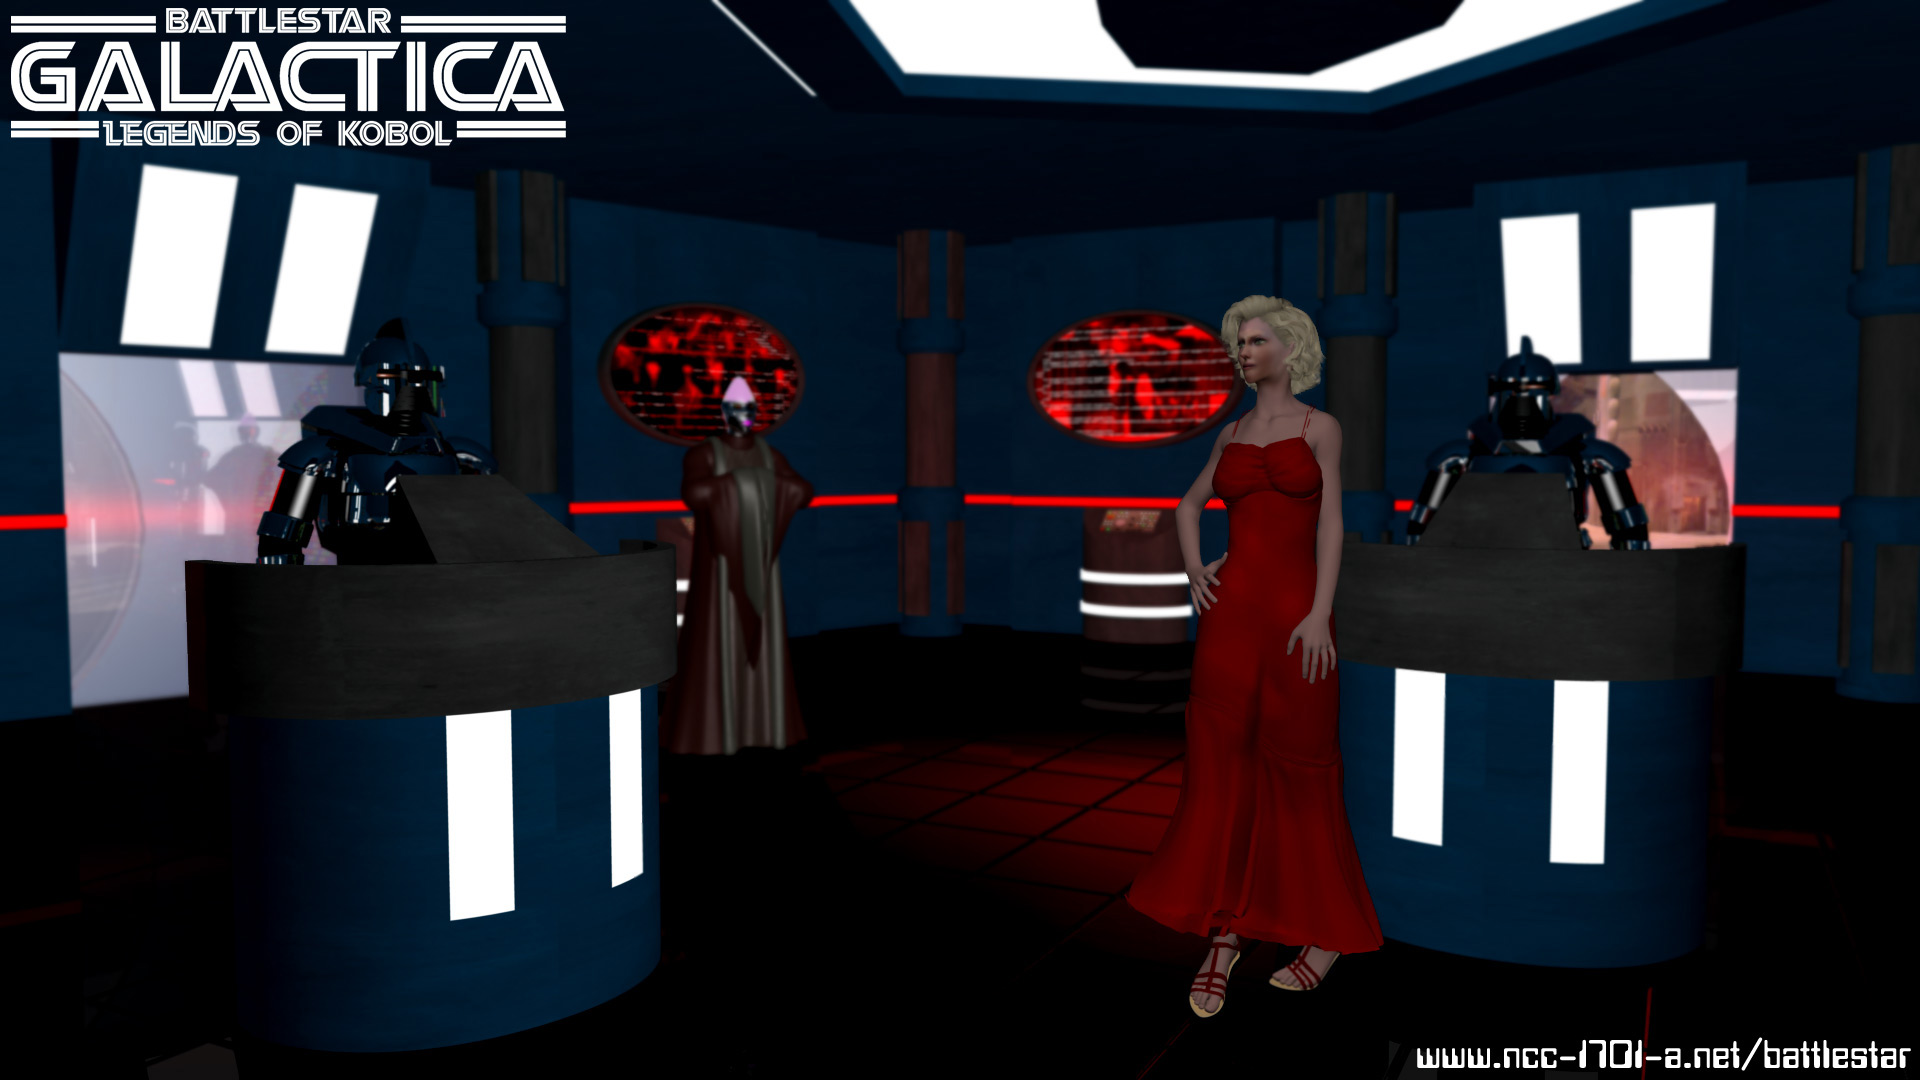 BattleStar Galactica: Legends of Kobol - Caprica by STLegends